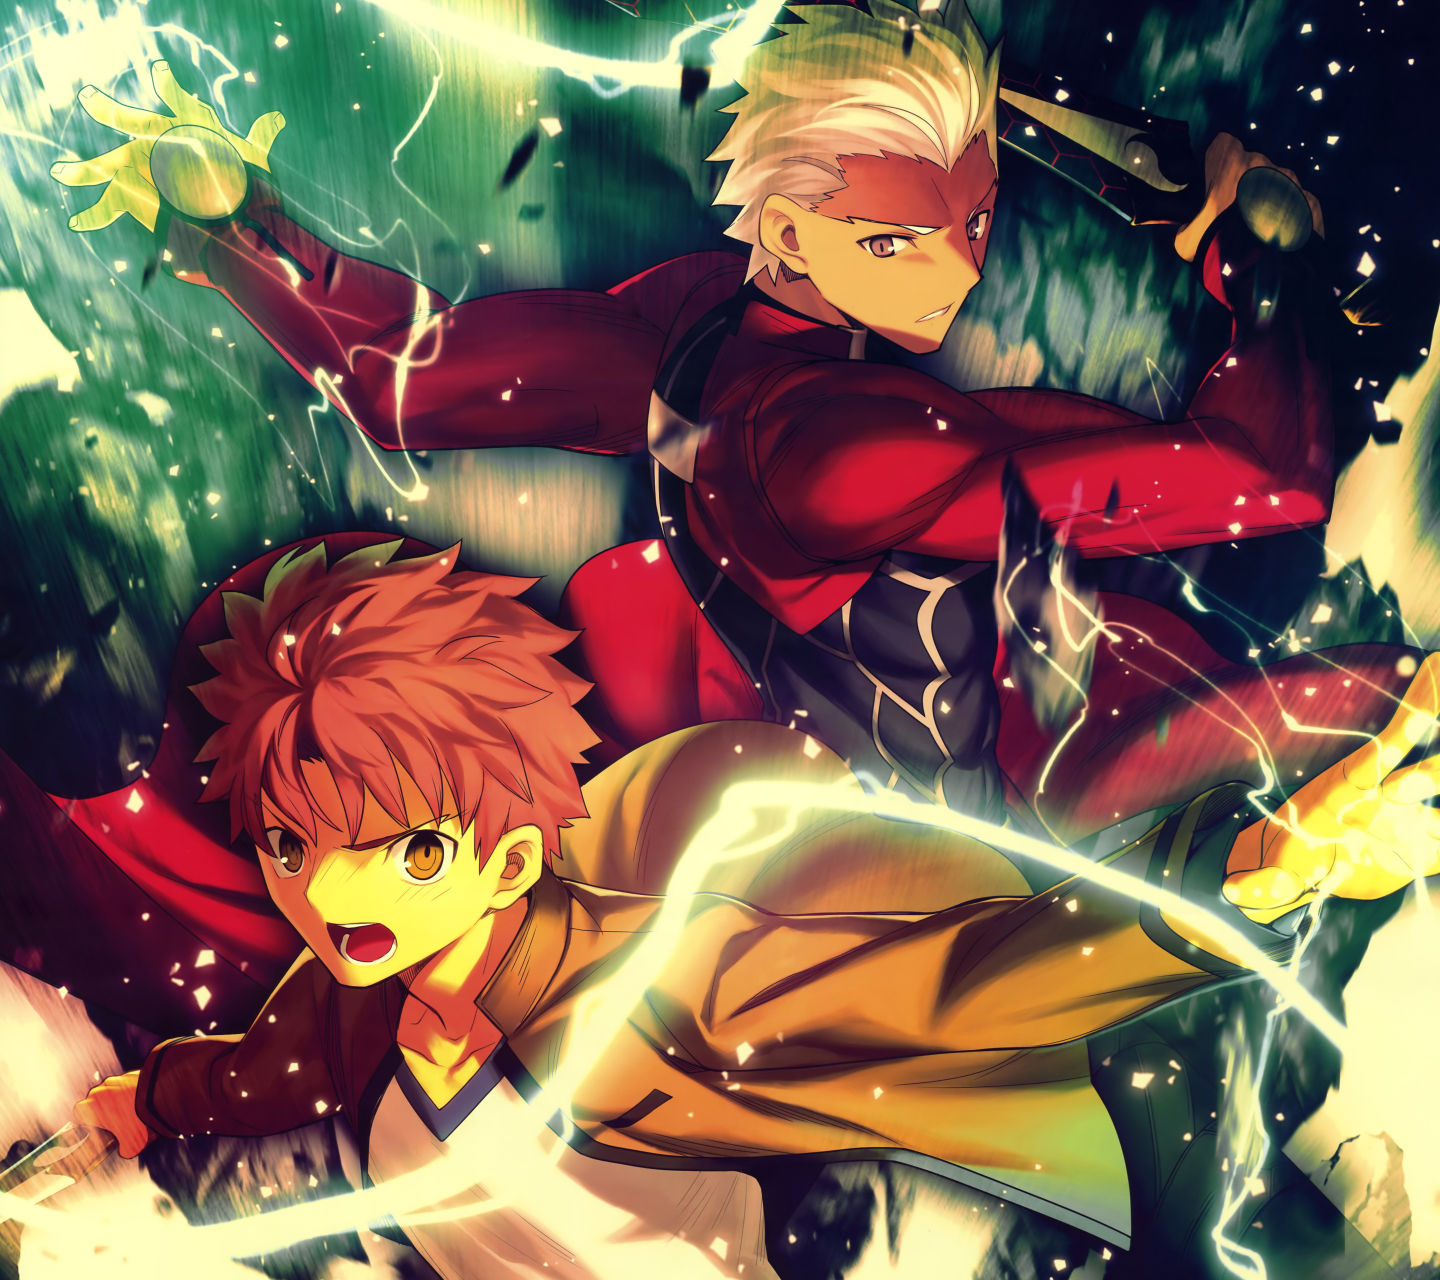 Fate Stay Night Android壁紙 画像 2 1440 1280 アニメ壁紙ネット Pc Android Iphone壁紙 画像